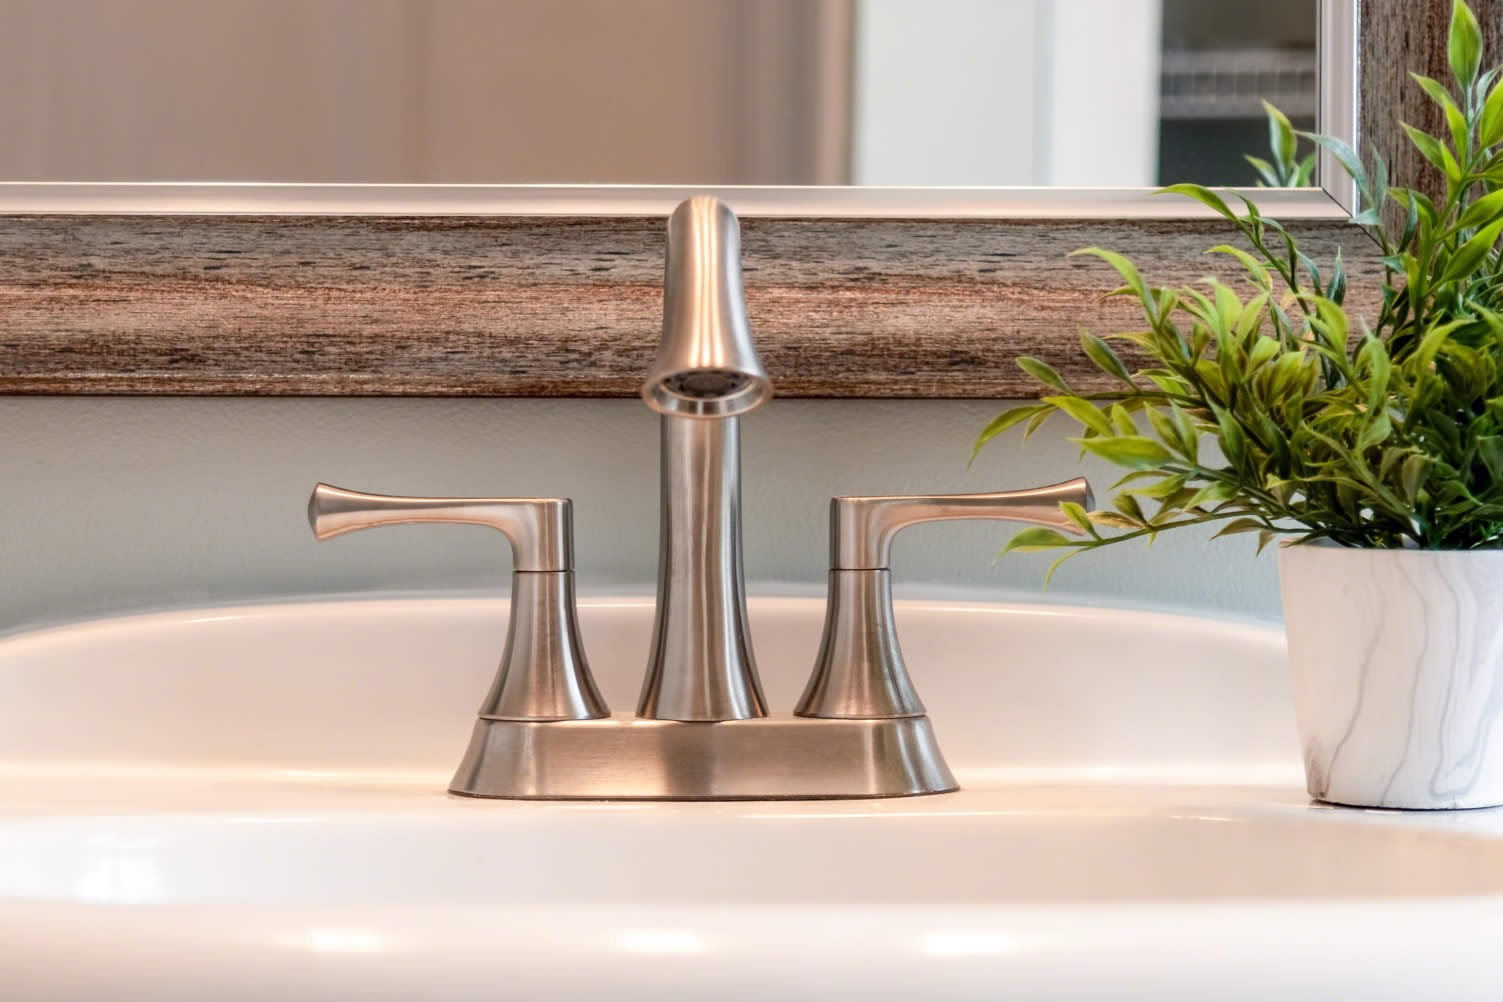 best faucet for your bathroom